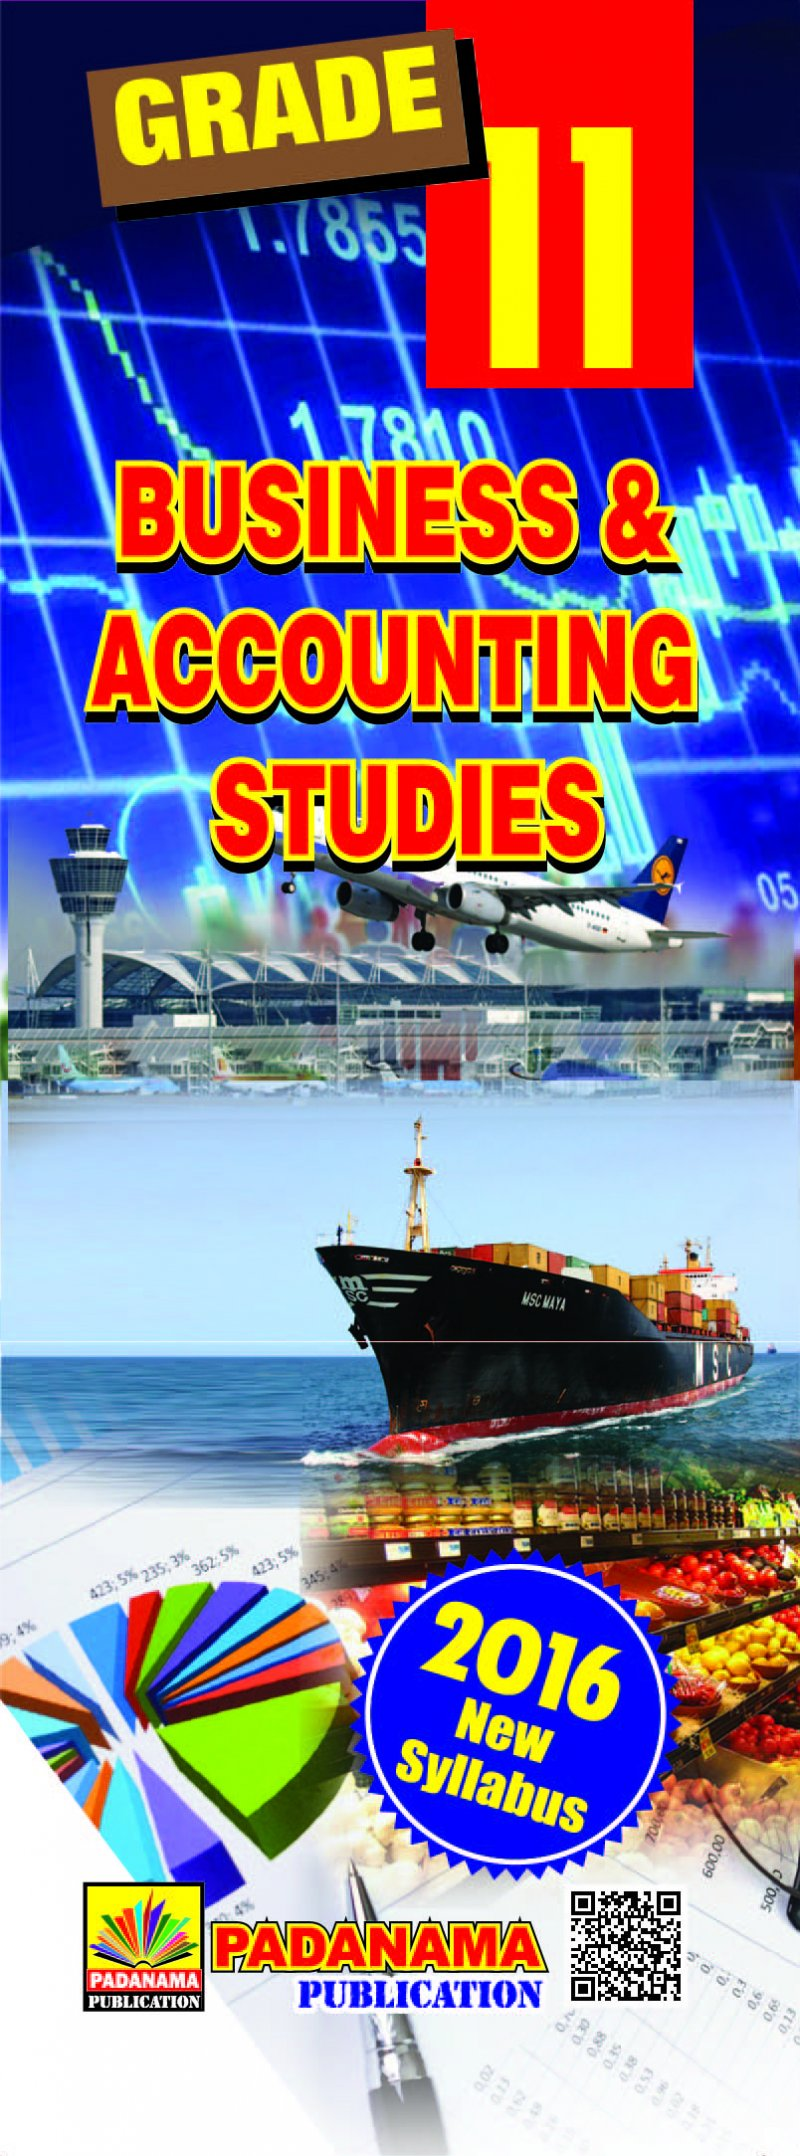 Business & Accounting Studies